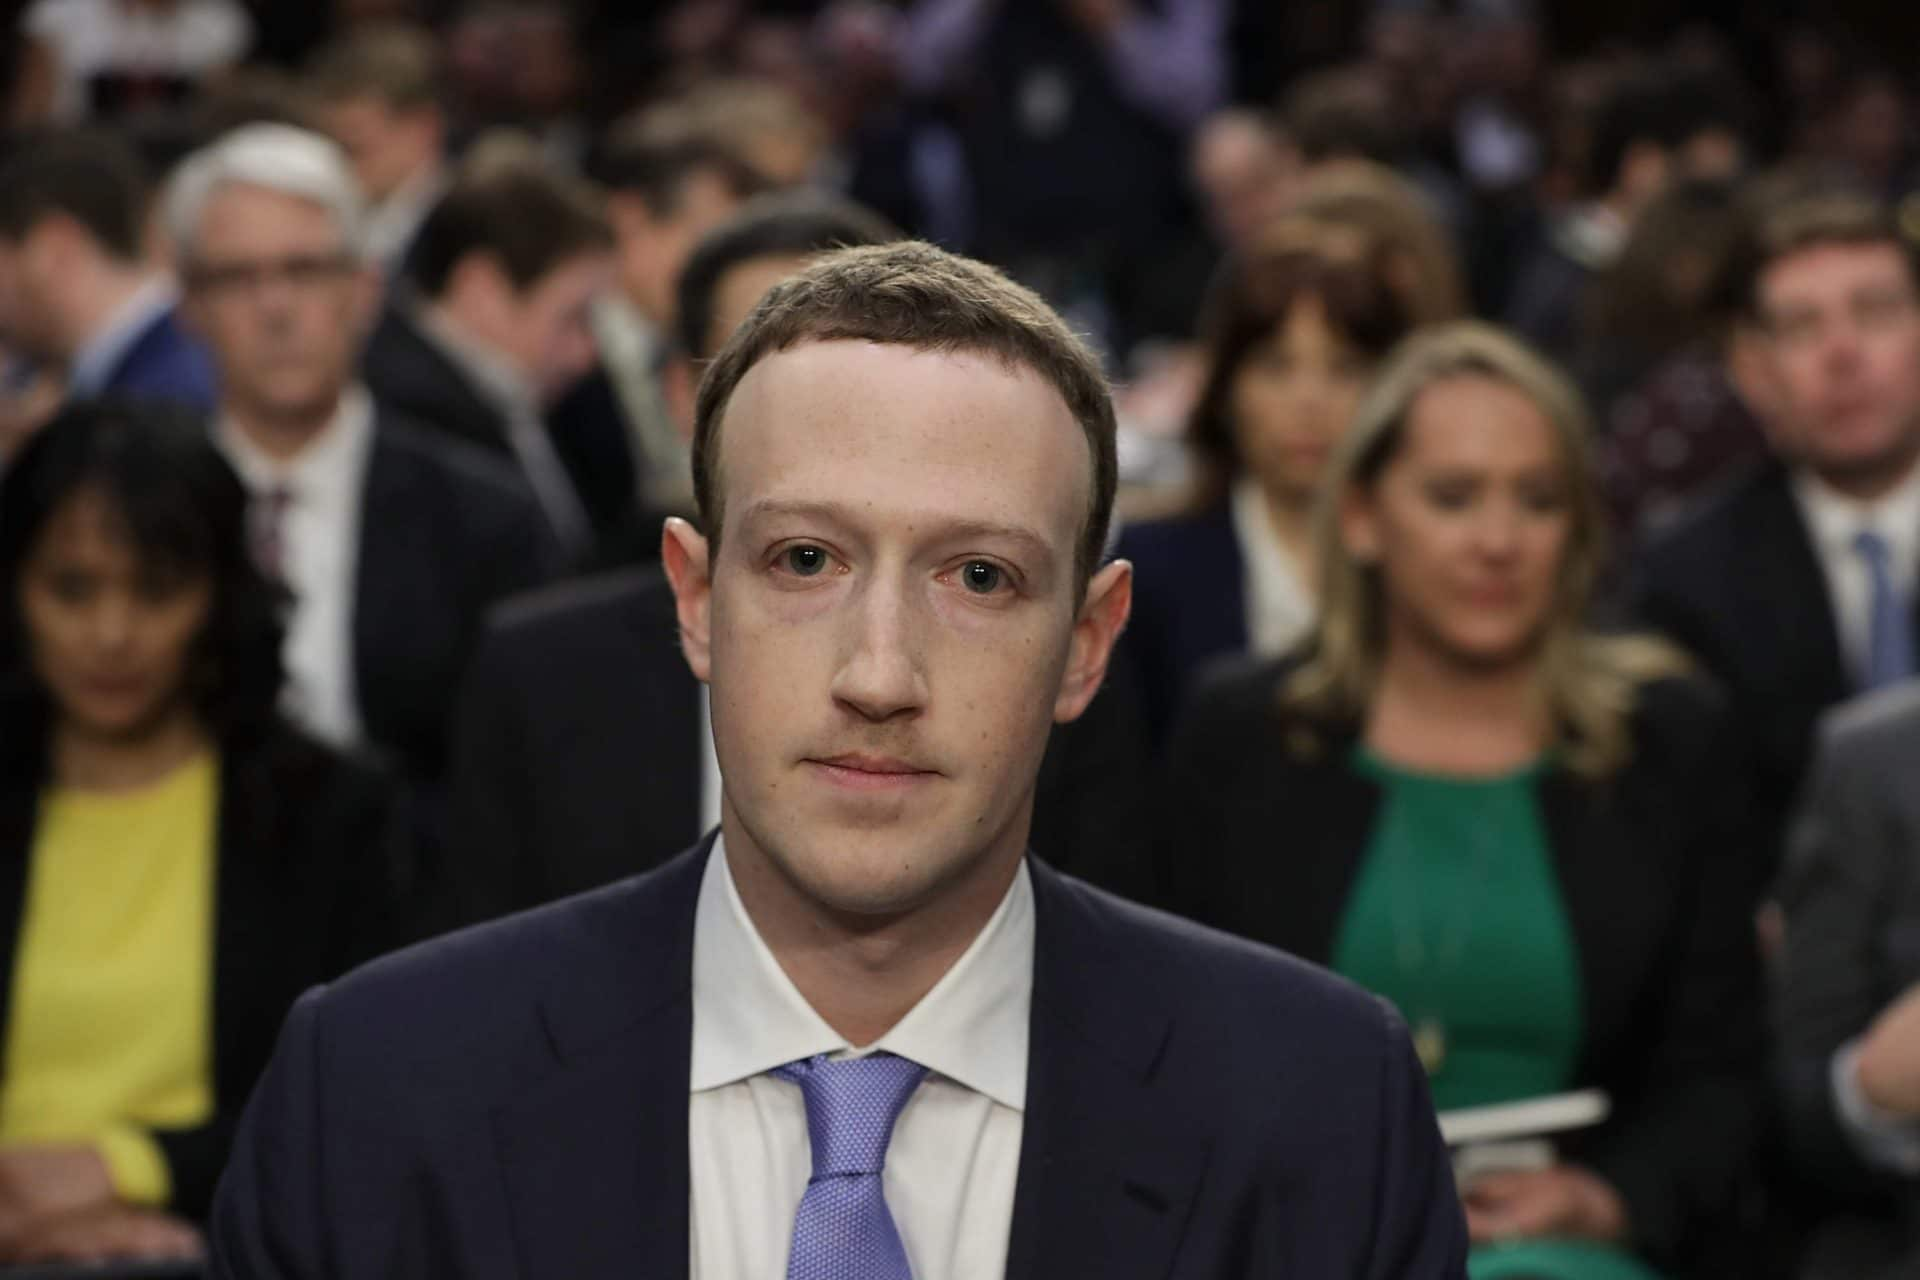 Mark Zuckerberg image